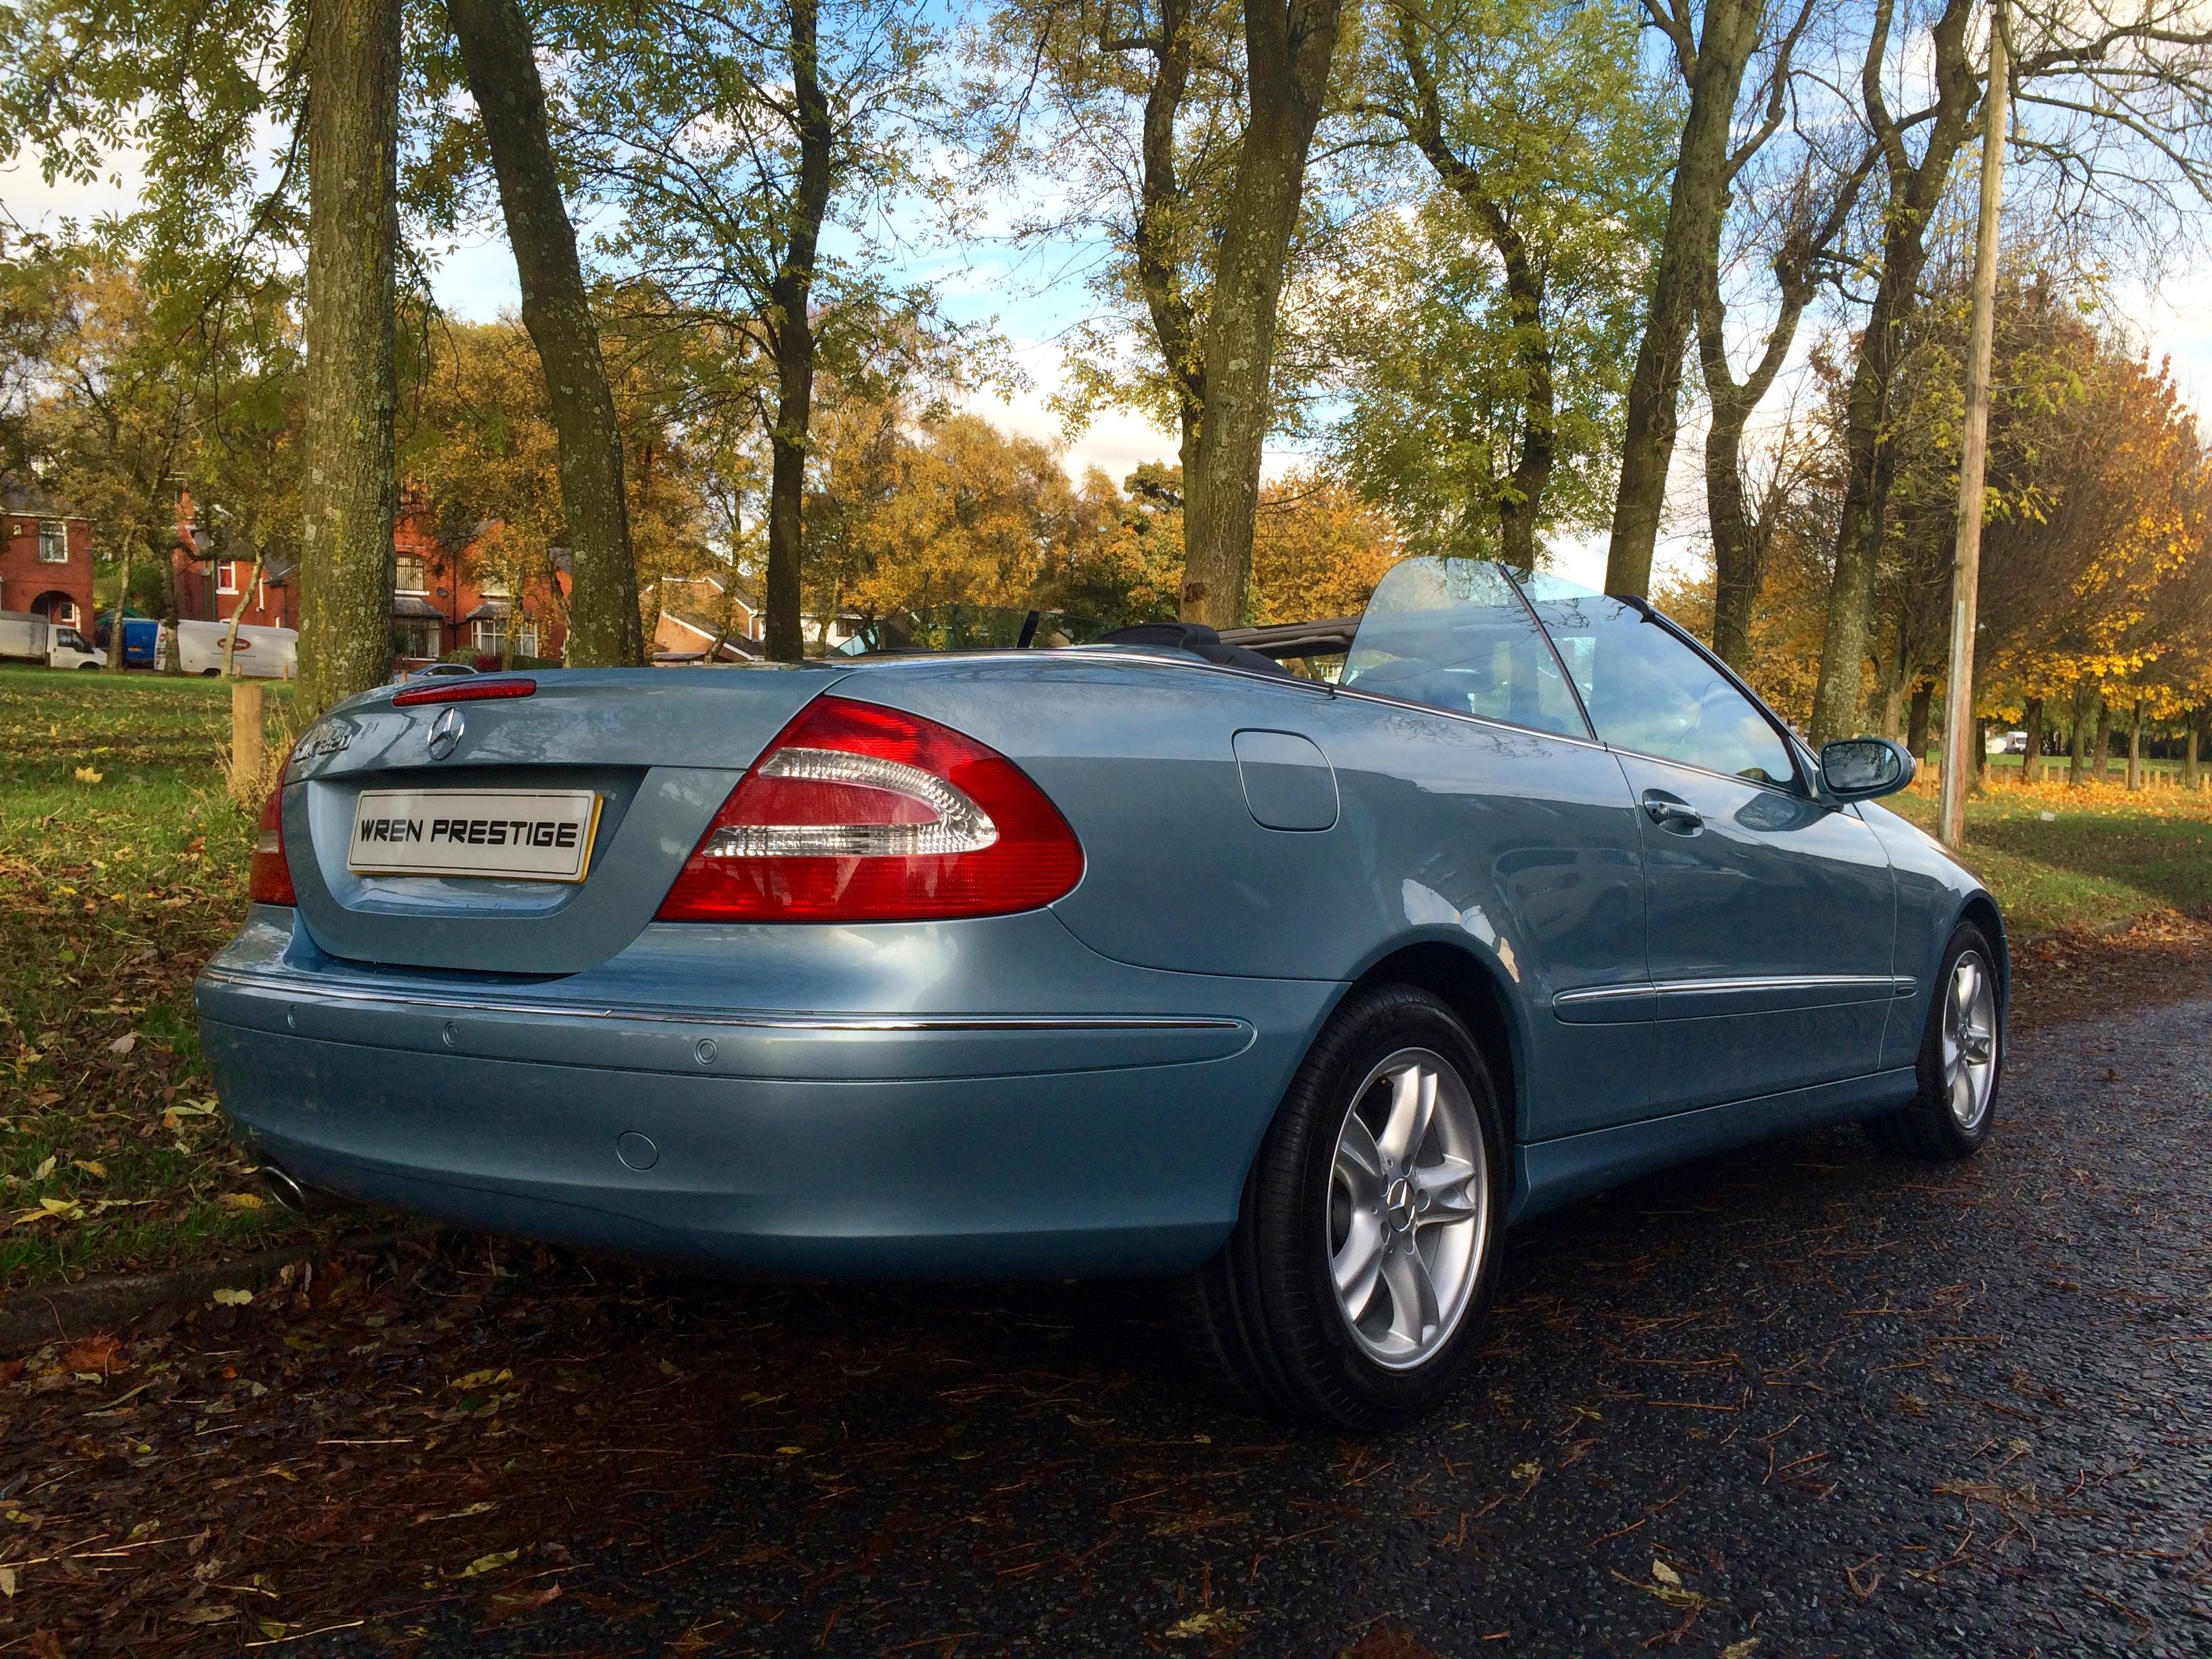 2018 Mercedes Benz CLK320 Cabriolet photo - 3